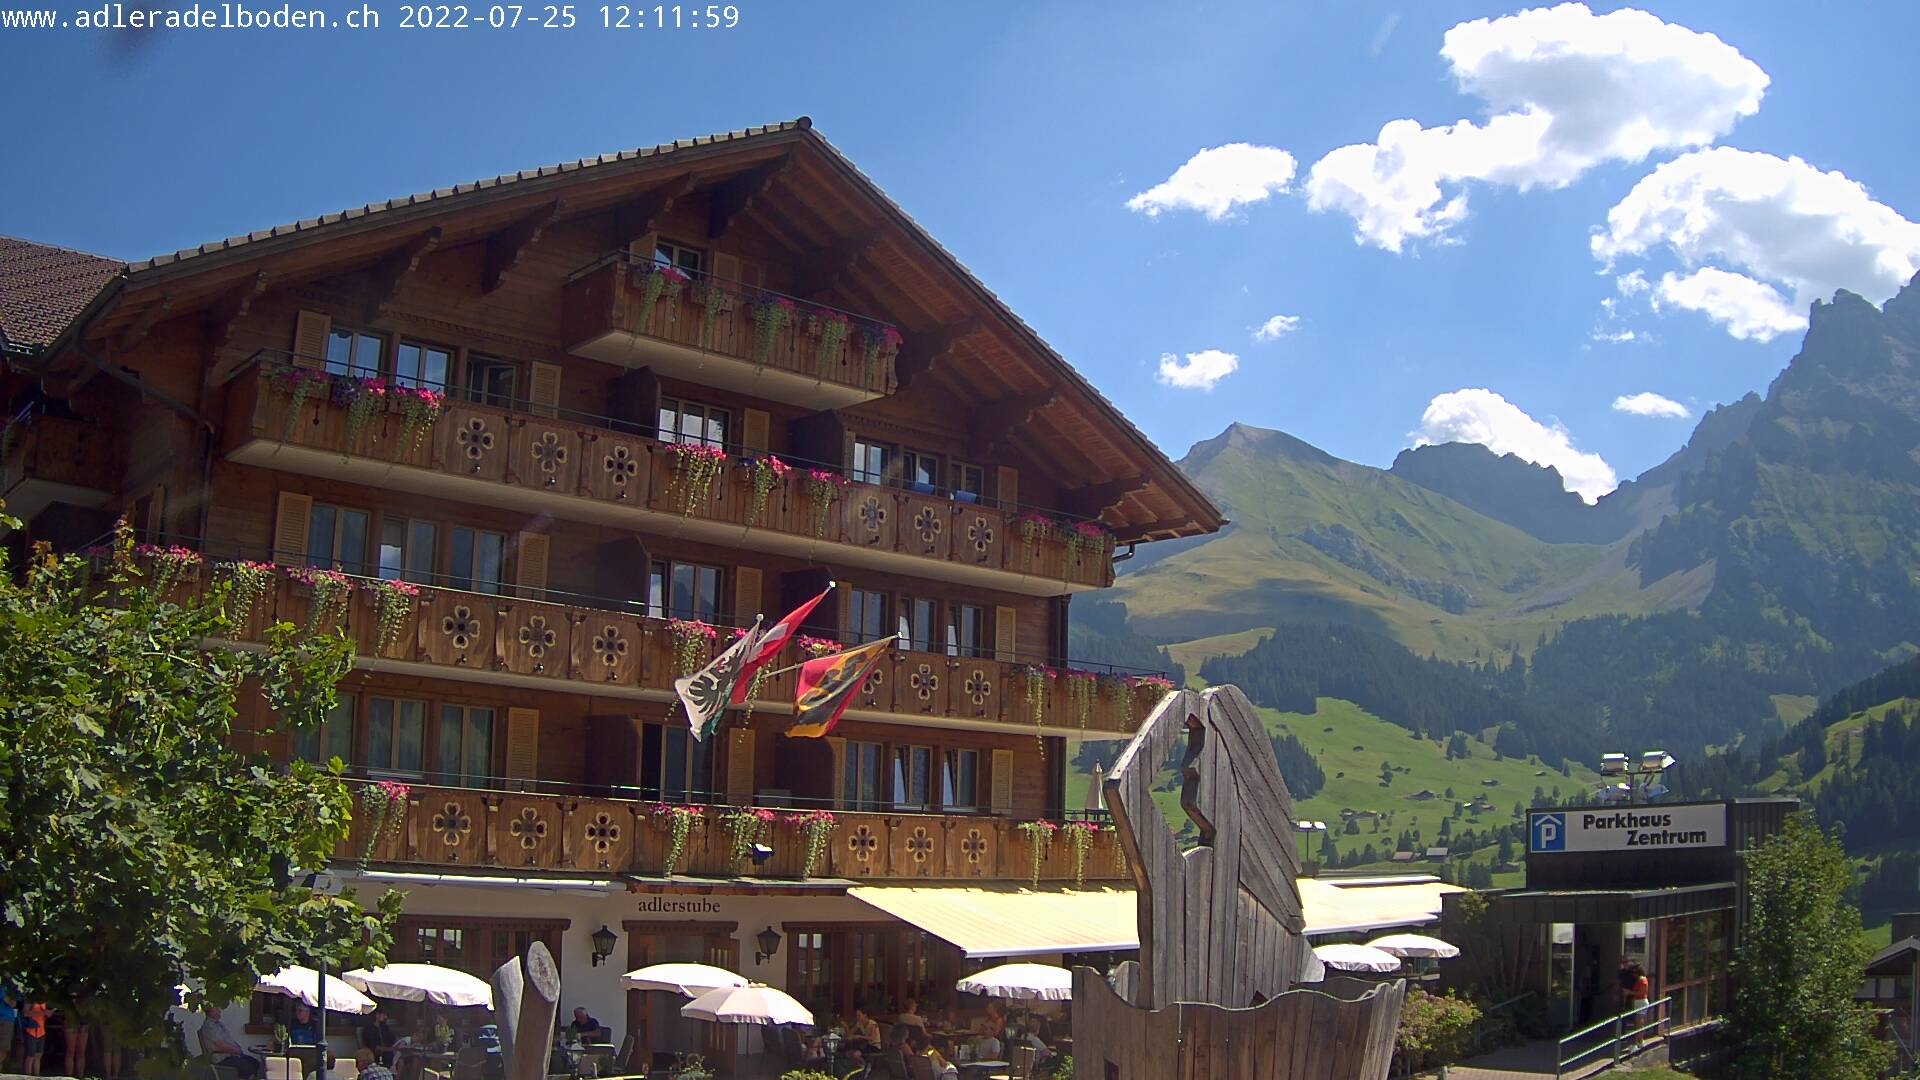 Webcam <br><span> adler adelboden</span>